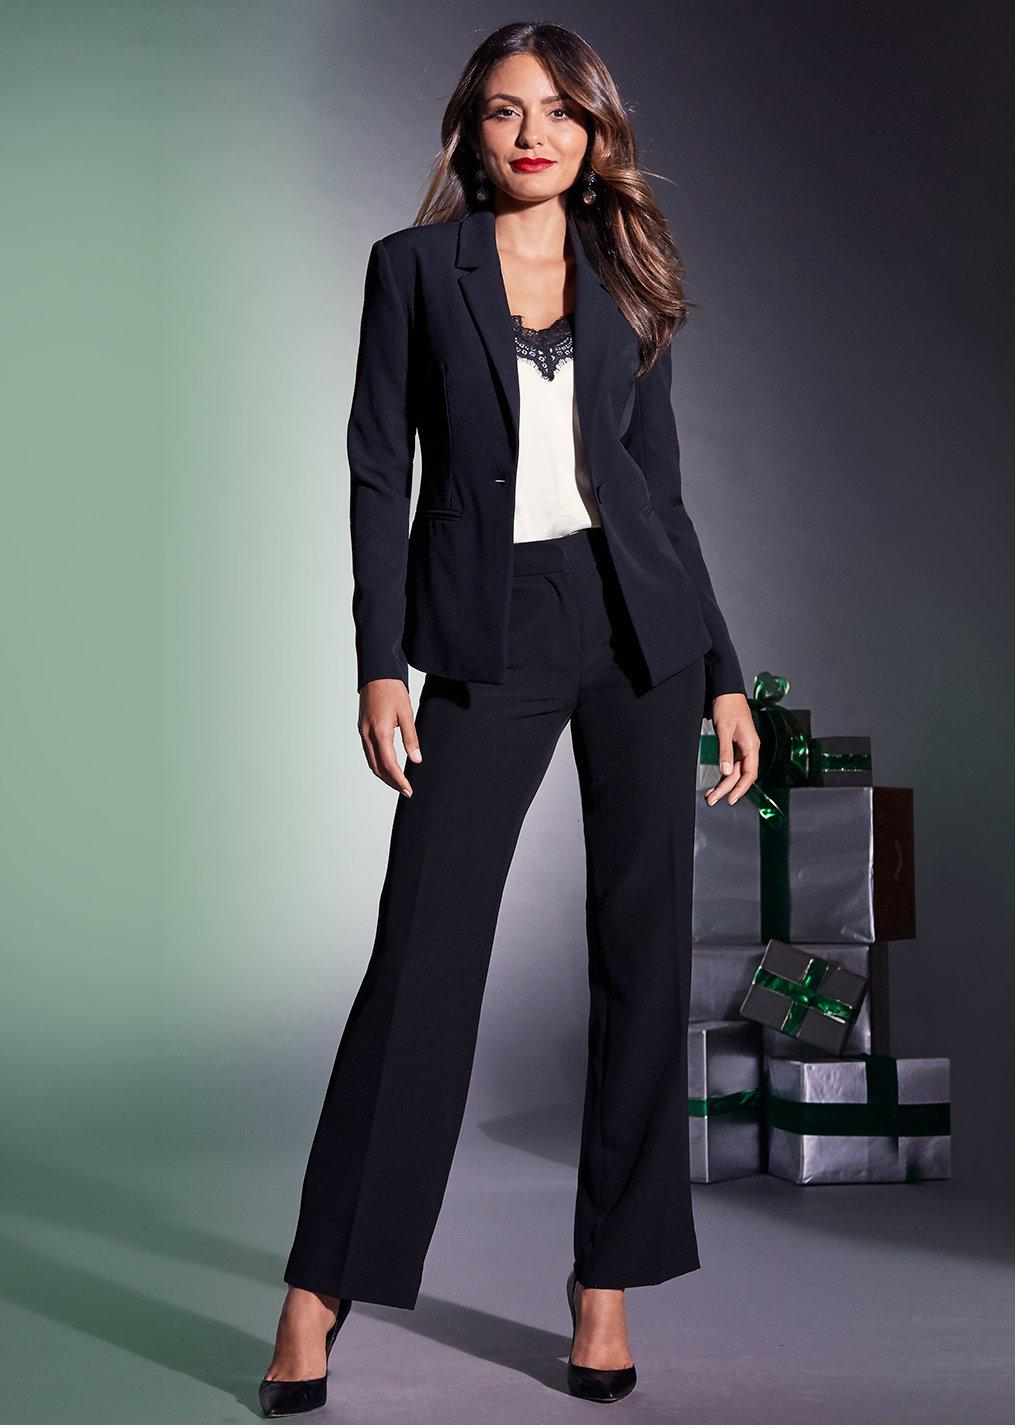 model wearing a black blazer with black pants over a white tank top with black lace